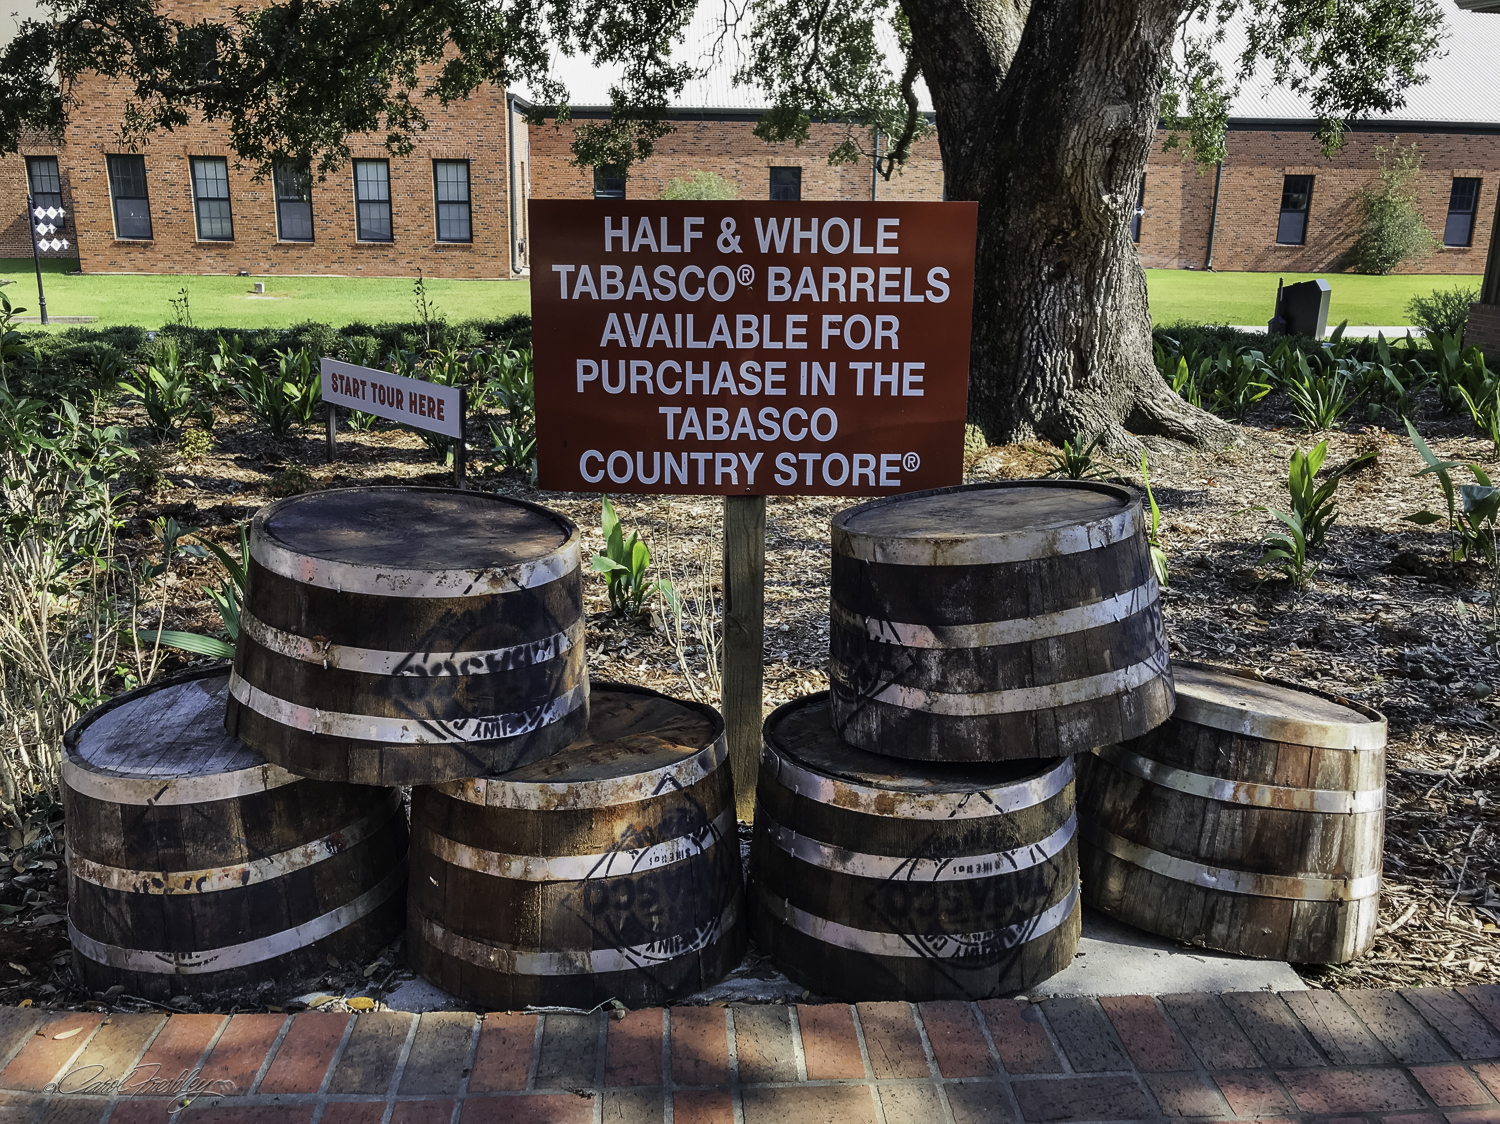 """As we walked up to the Museum to get our tickets we saw this great opportunity! My first thought was """"No room at our house."""" My next thought was, """"Hmmm, Tabasco must be a fermented item."""""""